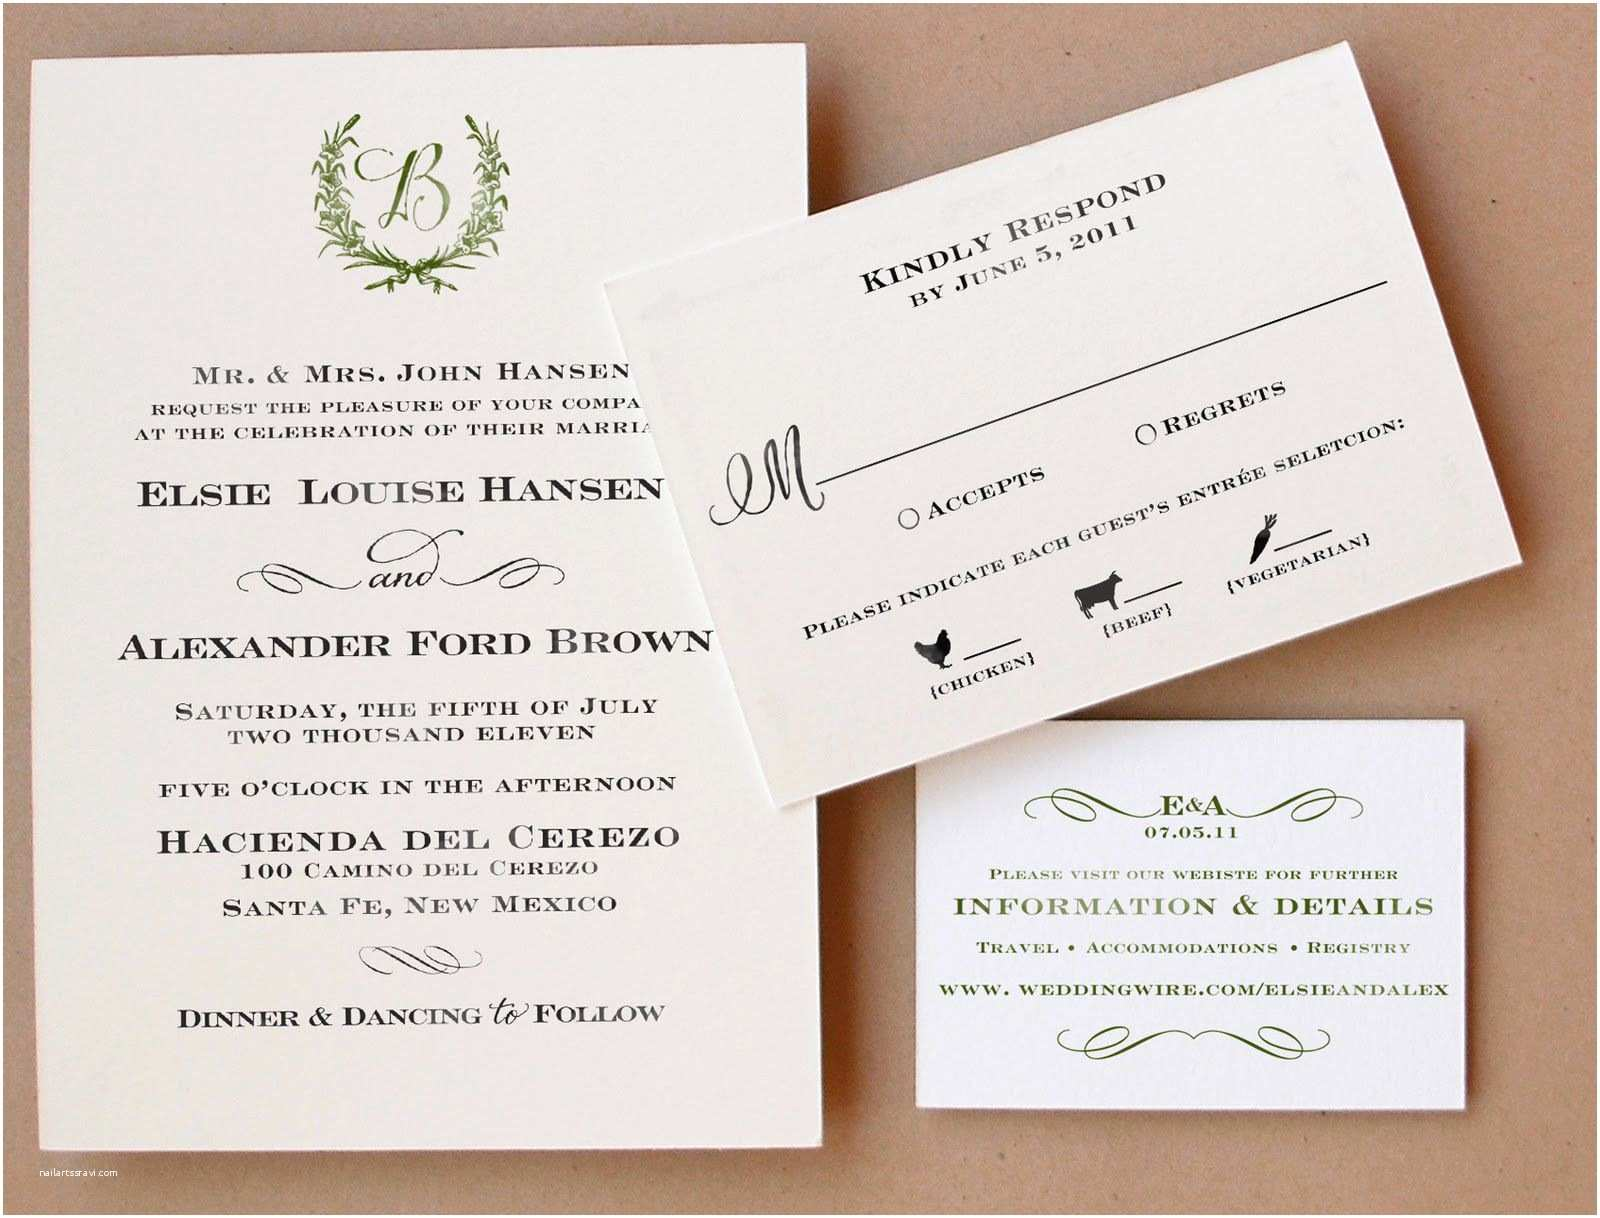 Wedding Invitations with Rsvp Cards Included event Invitation Wedding Invitations Reply Cards Card